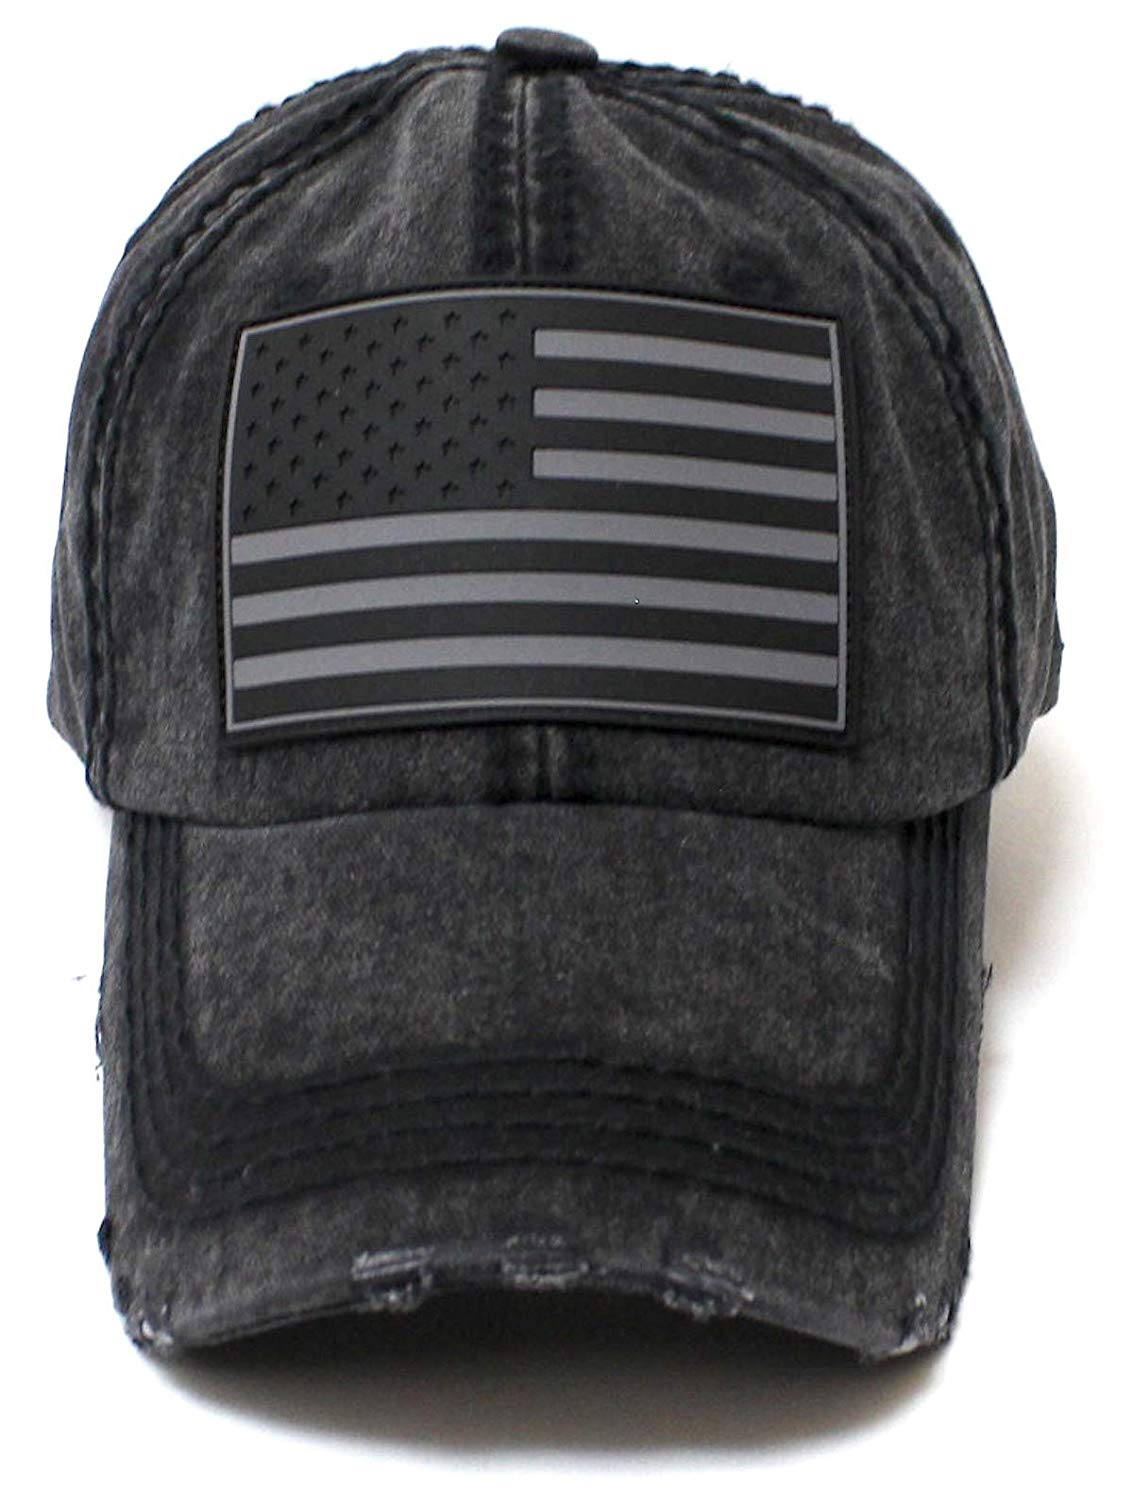 Black on Black American Flag Adjustable Baseball Hat - Caps 'N Vintage